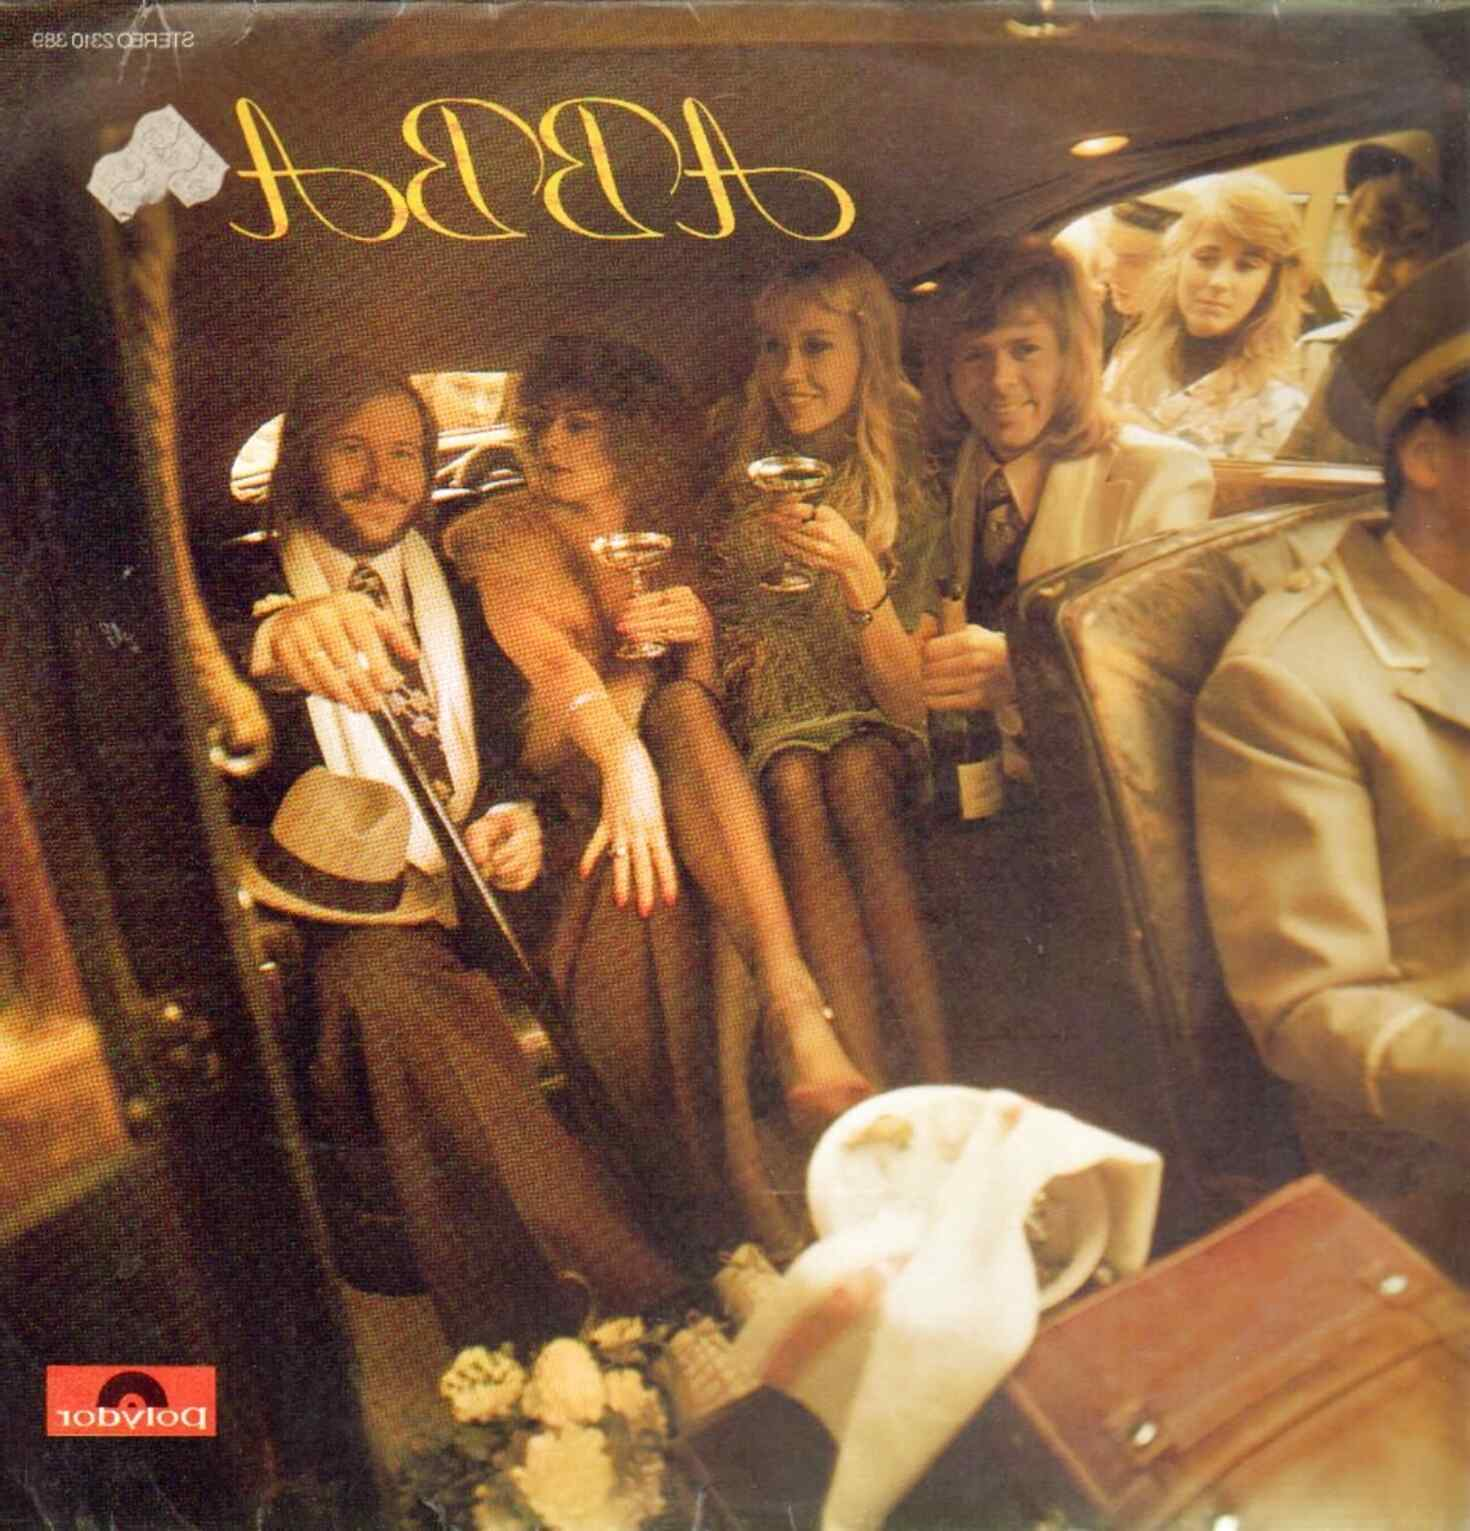 abba vinyl for sale